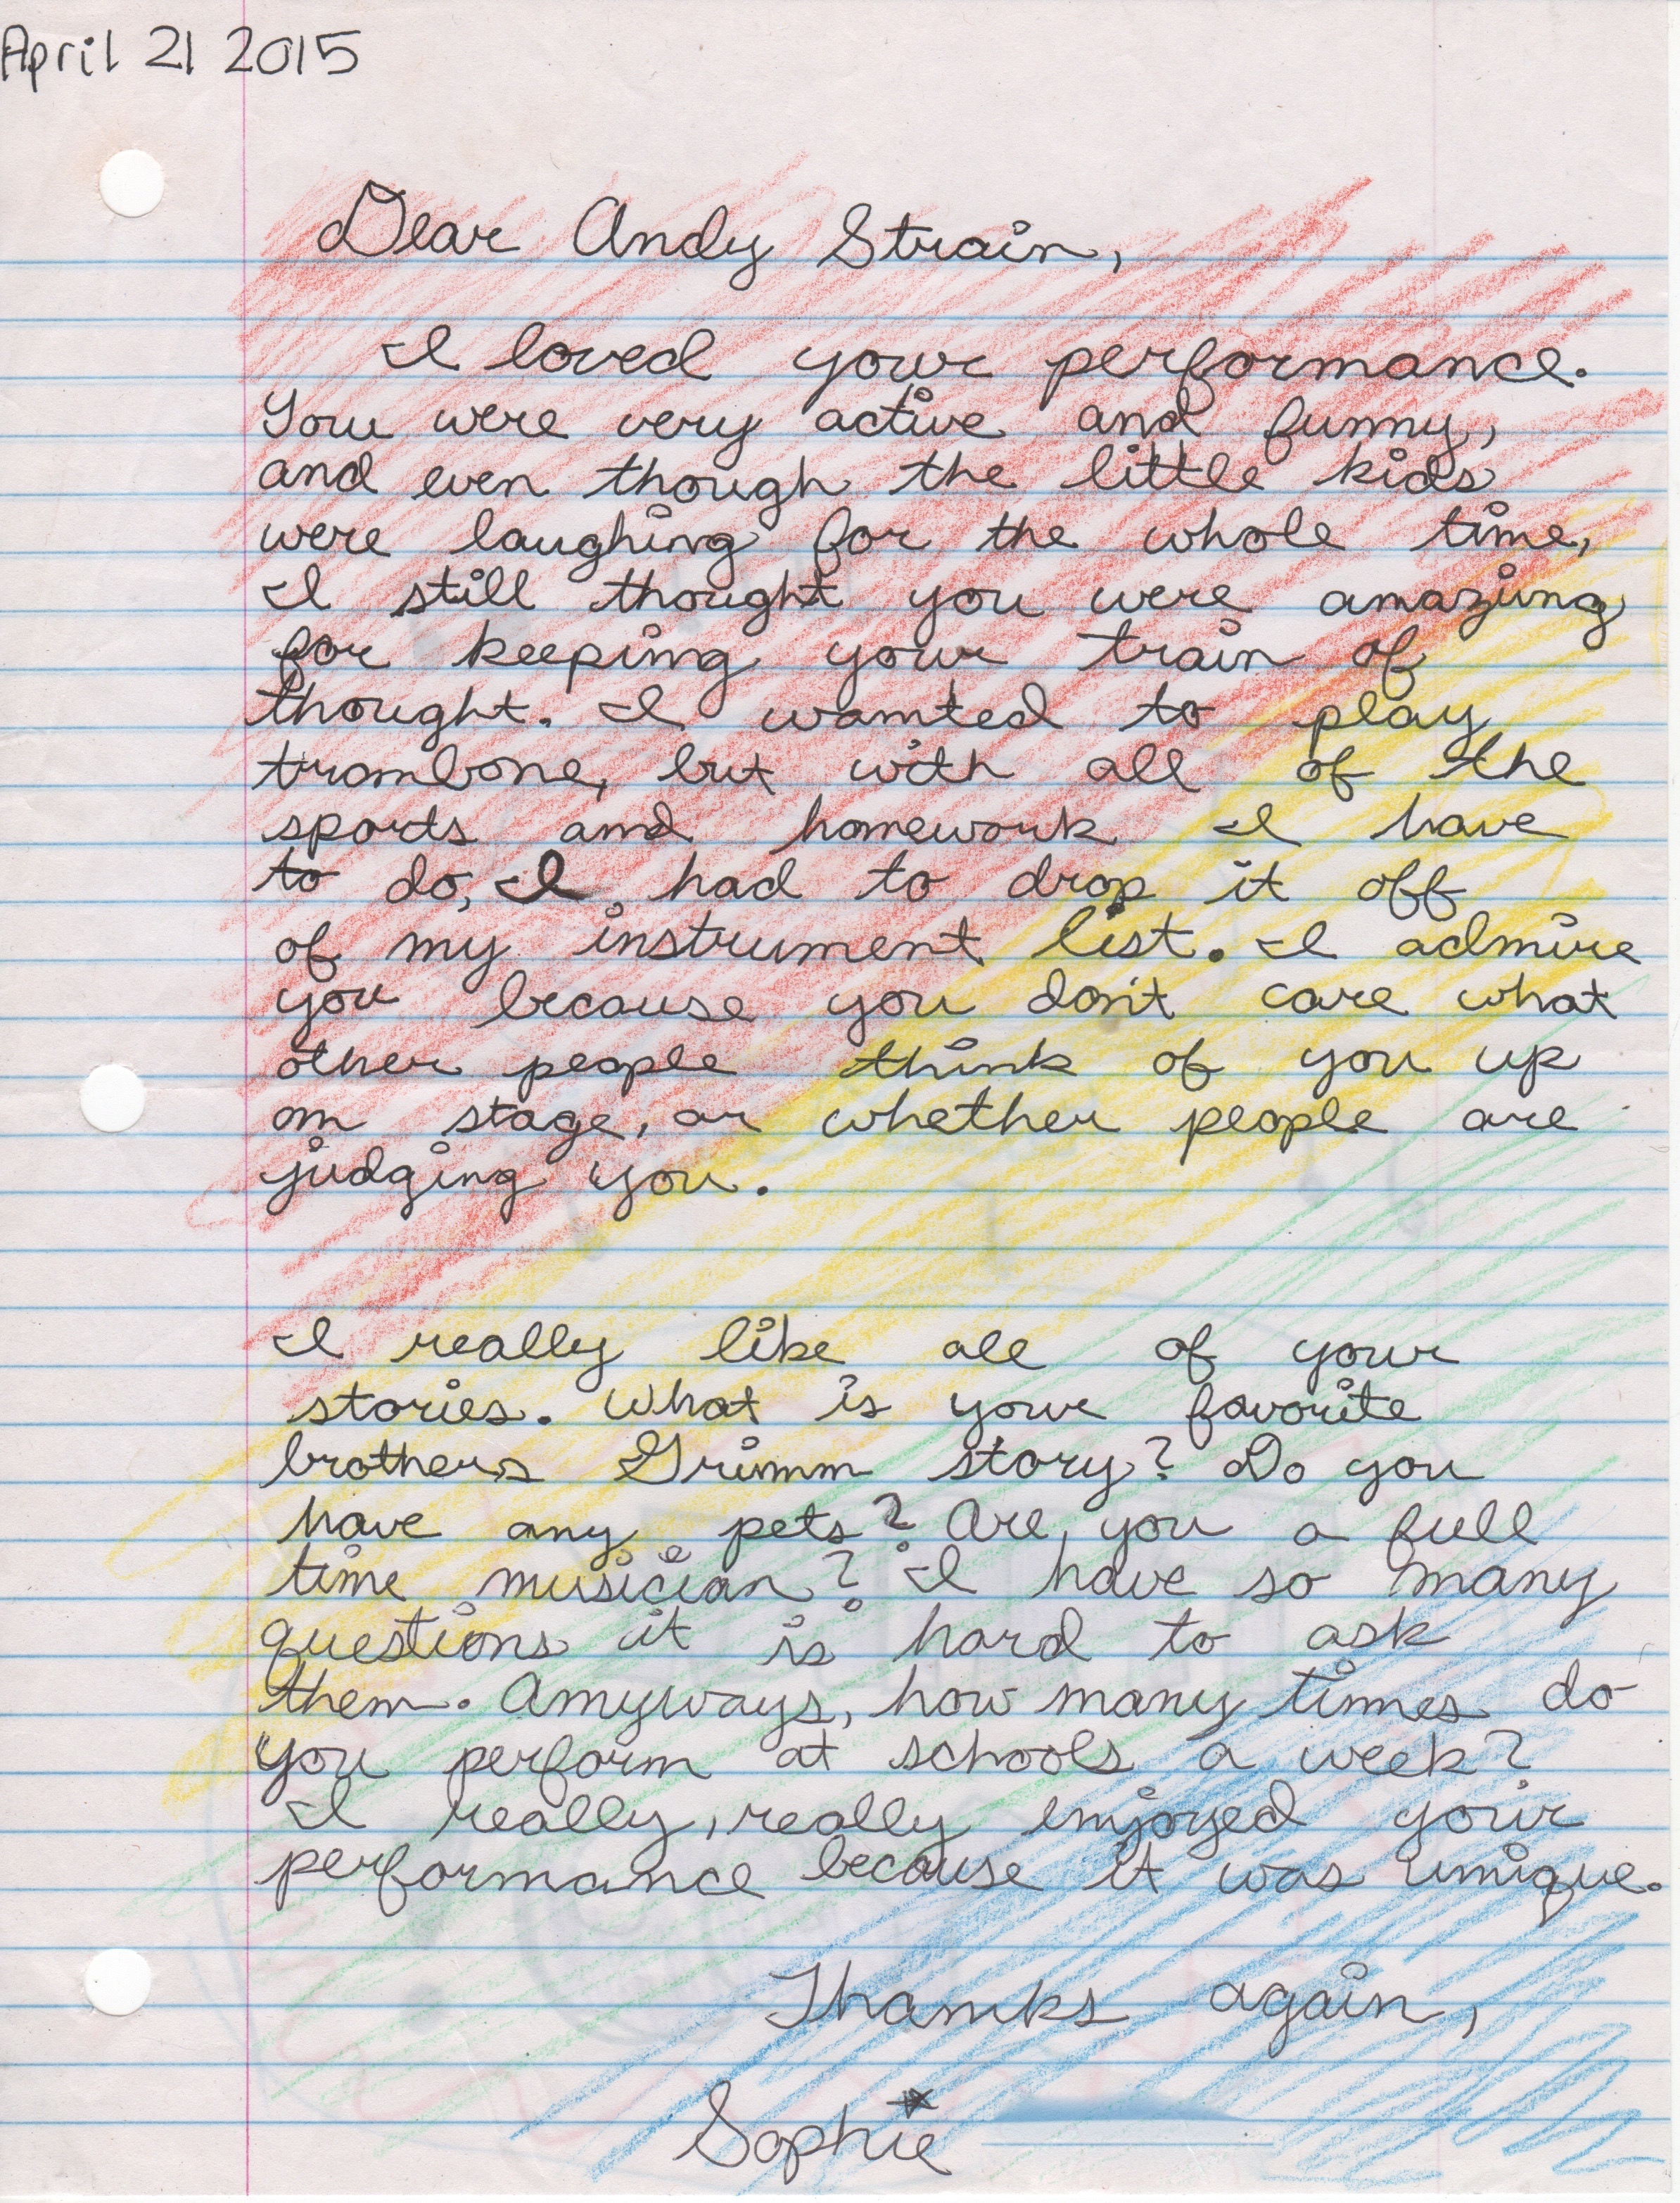 Dear Sophie,  Thank you times infinity! Wow... I can honestly say I've never received such marvelous compliments through one colorful prism in my entire life! I am honored.  I've been hearing a lot these days about how much homework Middle Schoolers get. I listened to Beethoven Symphonies when I studied in college. My favorite Bros. Grimm story is probably The Bremen Town Musicians because every time I tell it, it finds new depth and meaning.  As a full time musician, I travel a lot. It's my favorite thing in the world - traveling and playing music. Someday a furry friend will be at my side. Some weeks I perform once, some none, and some weeks up to 12 times! Everyday, I see a performance in the world - the harmonies the dissonances - and discover myself in an improvisation rich and diverse, and all I can do is my best all the time and take naps.   I admire your letter writing. Thank you for sharing. Have a colorful school year, Sophie!